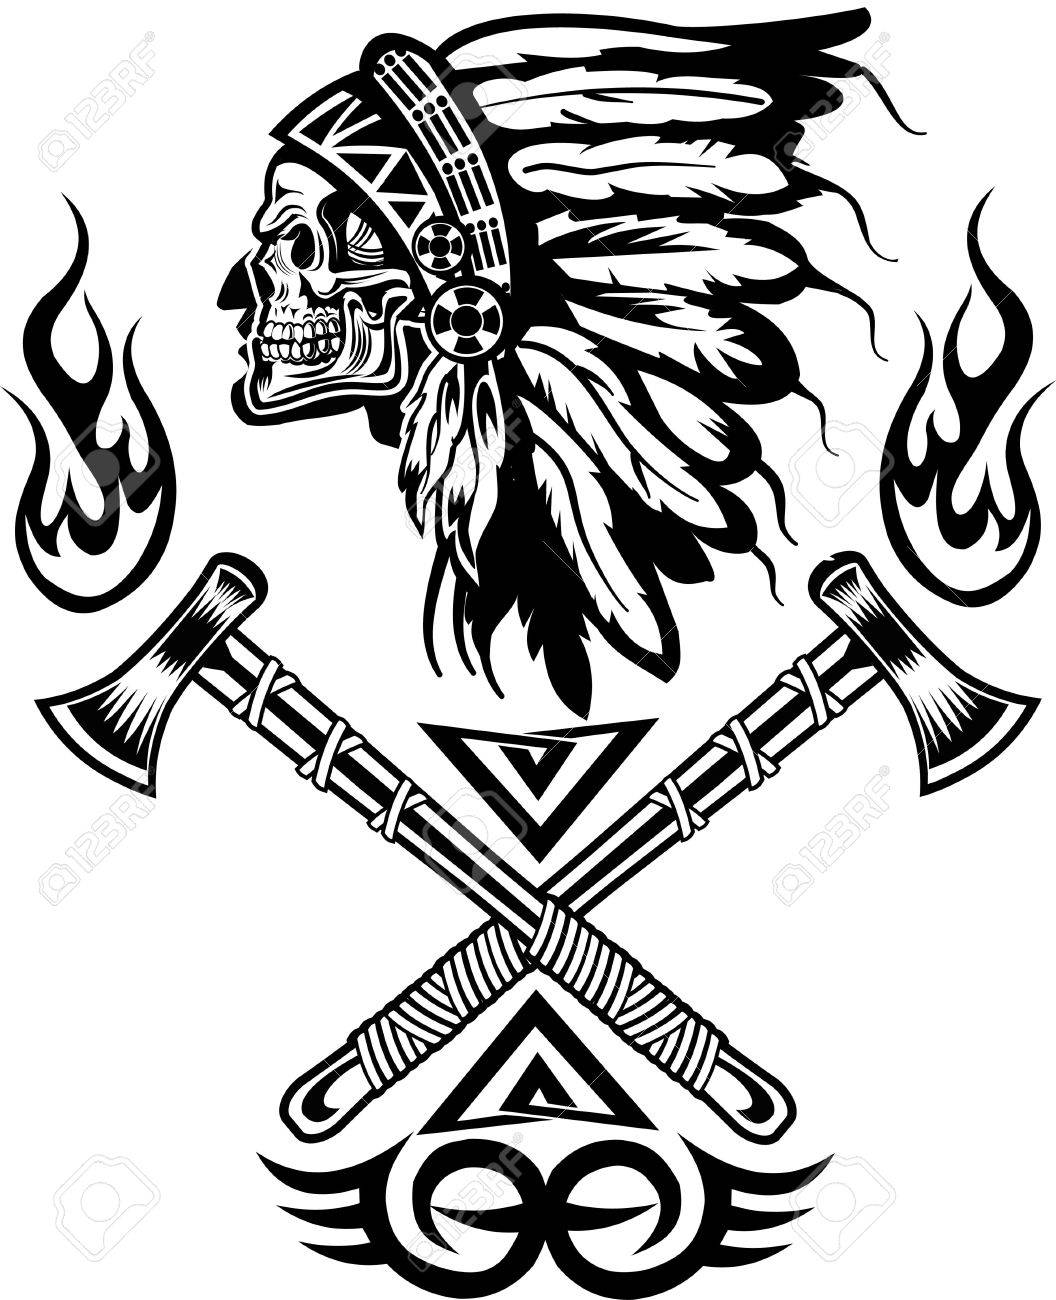 1056x1300 Indian Chief Tomahawk Royalty Free Cliparts, Vectors, And Stock